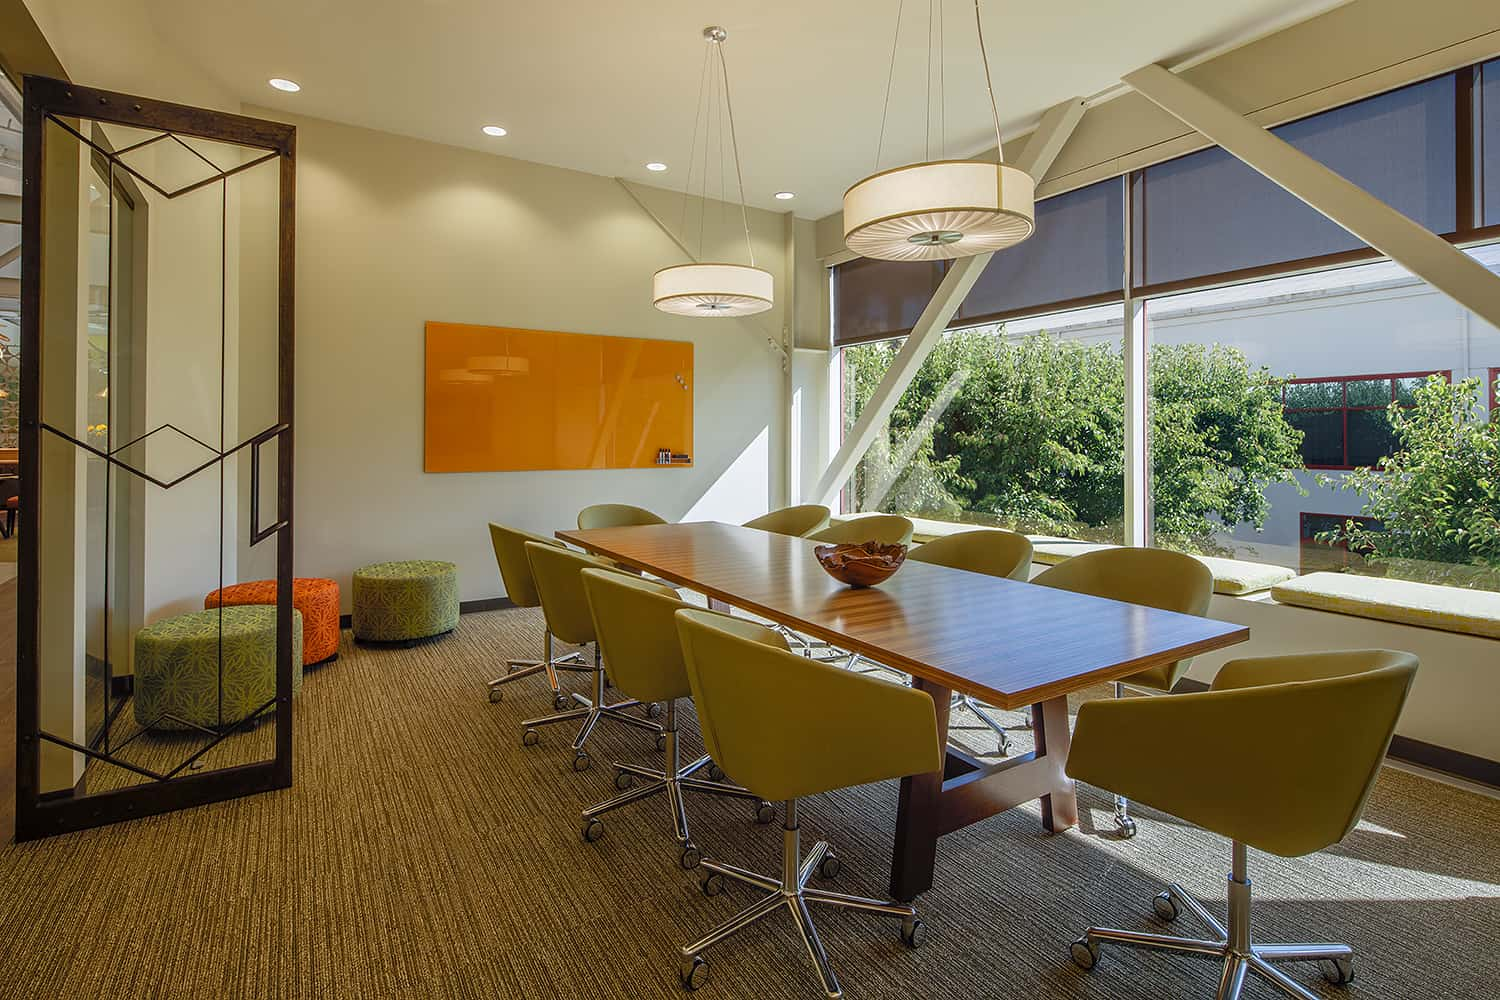 Interior Design Commercial and Home Spaces